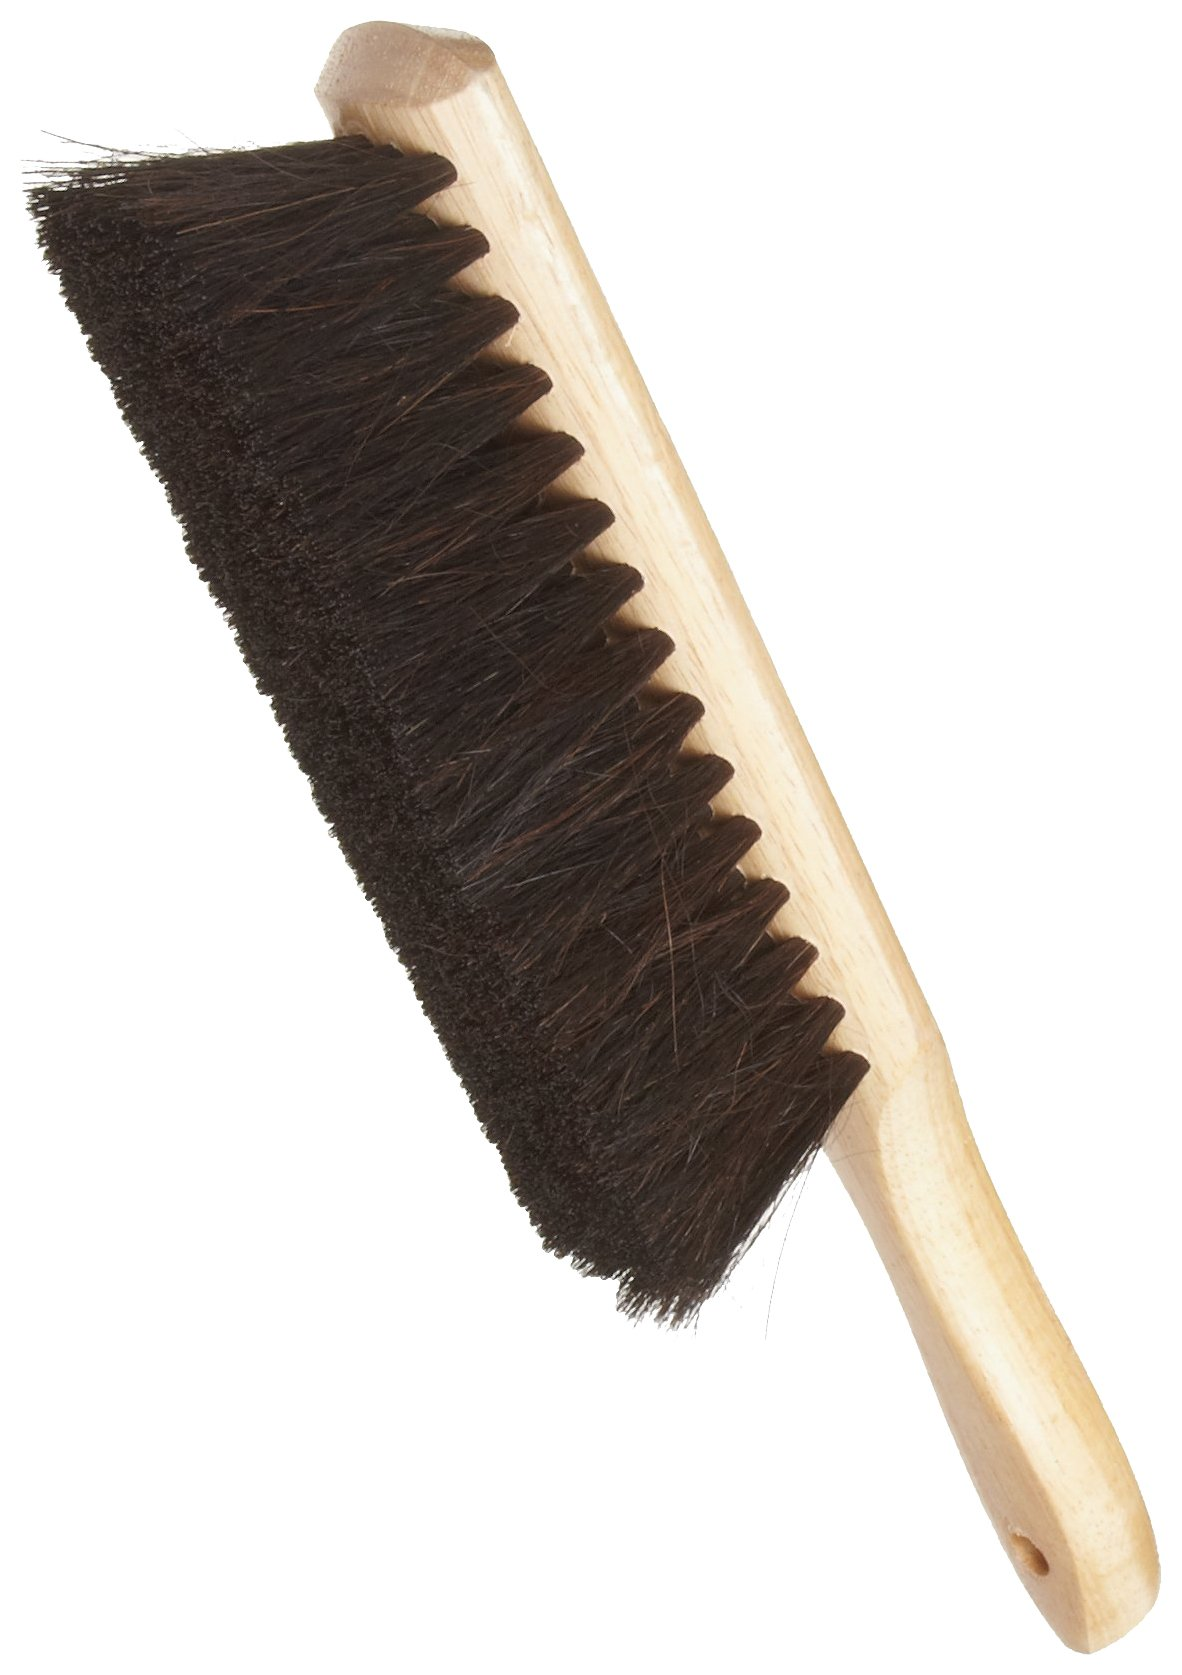 Weiler 71019 Horsehair Counter Duster with Wood Handle, Wood Block, 2-1/2'' Head Width, 8'' Overall Length, Natural